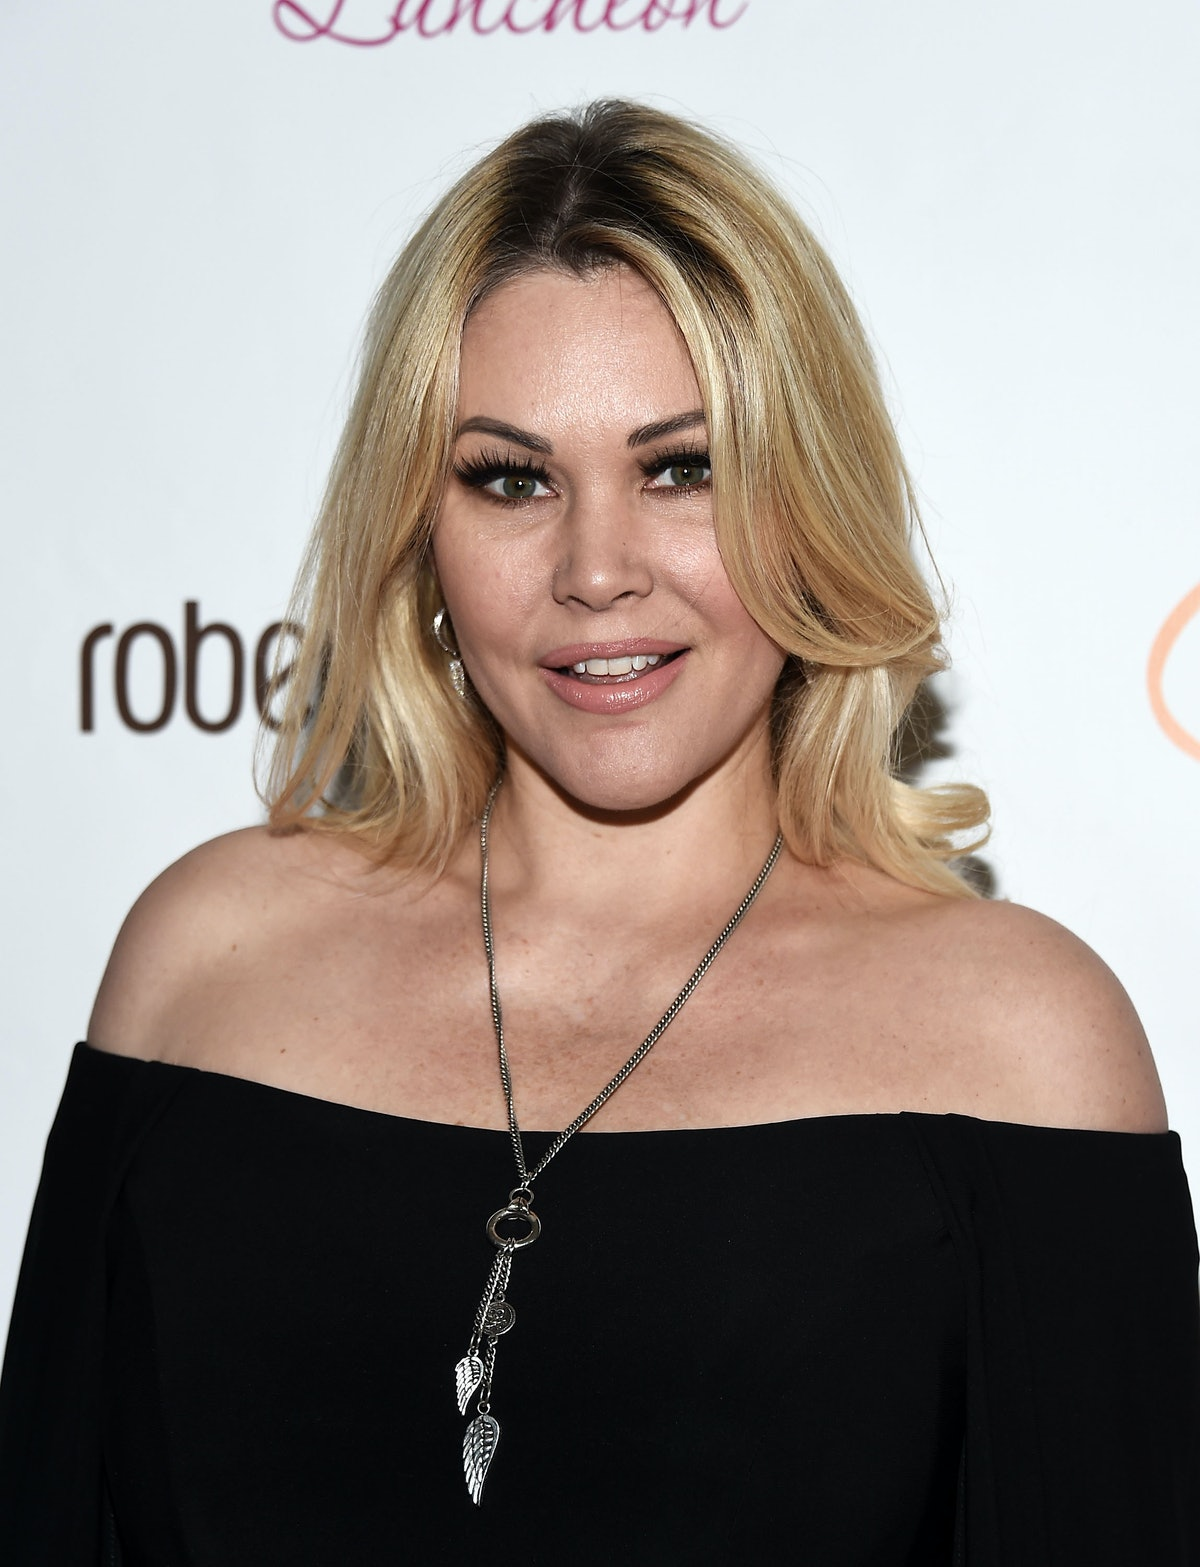 BEVERLY HILLS, CA - NOVEMBER 17:  Model Shanna Moakler arrives at the Lupus LA 15th Annual Hollywood Bag Ladies Luncheon at The Beverly Hilton Hotel on November 17, 2017 in Beverly Hills, California.  (Photo by Amanda Edwards/WireImage)